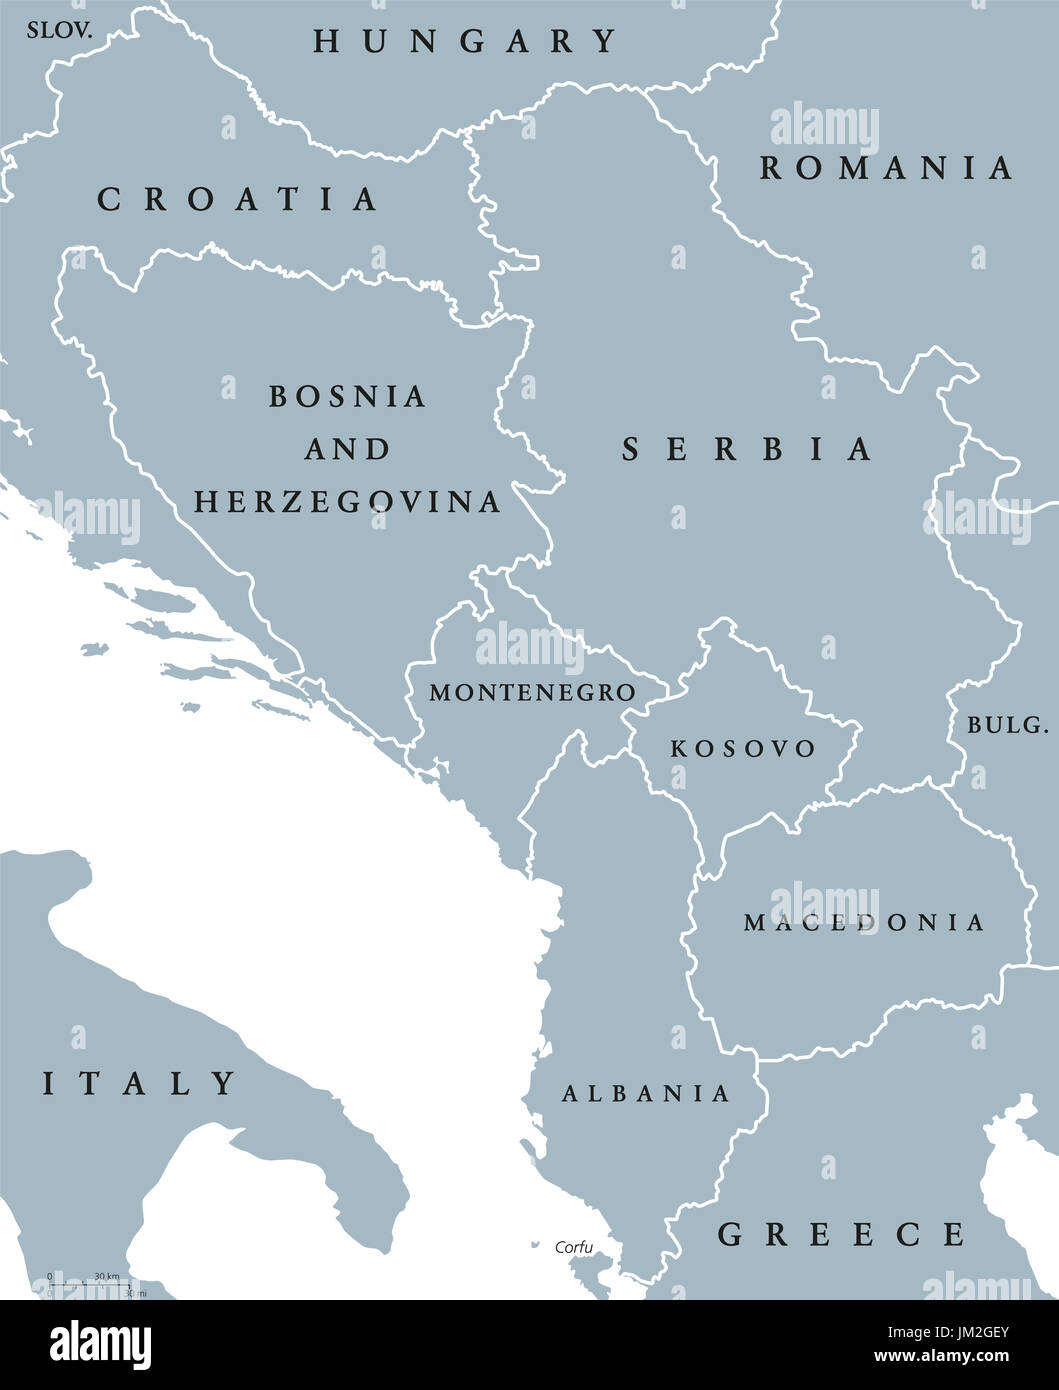 Central Balkan political map with borders. Southeastern countries on the Balkan Peninsula in Europe from Croatia to Greece. Gray illustration. - Stock Image